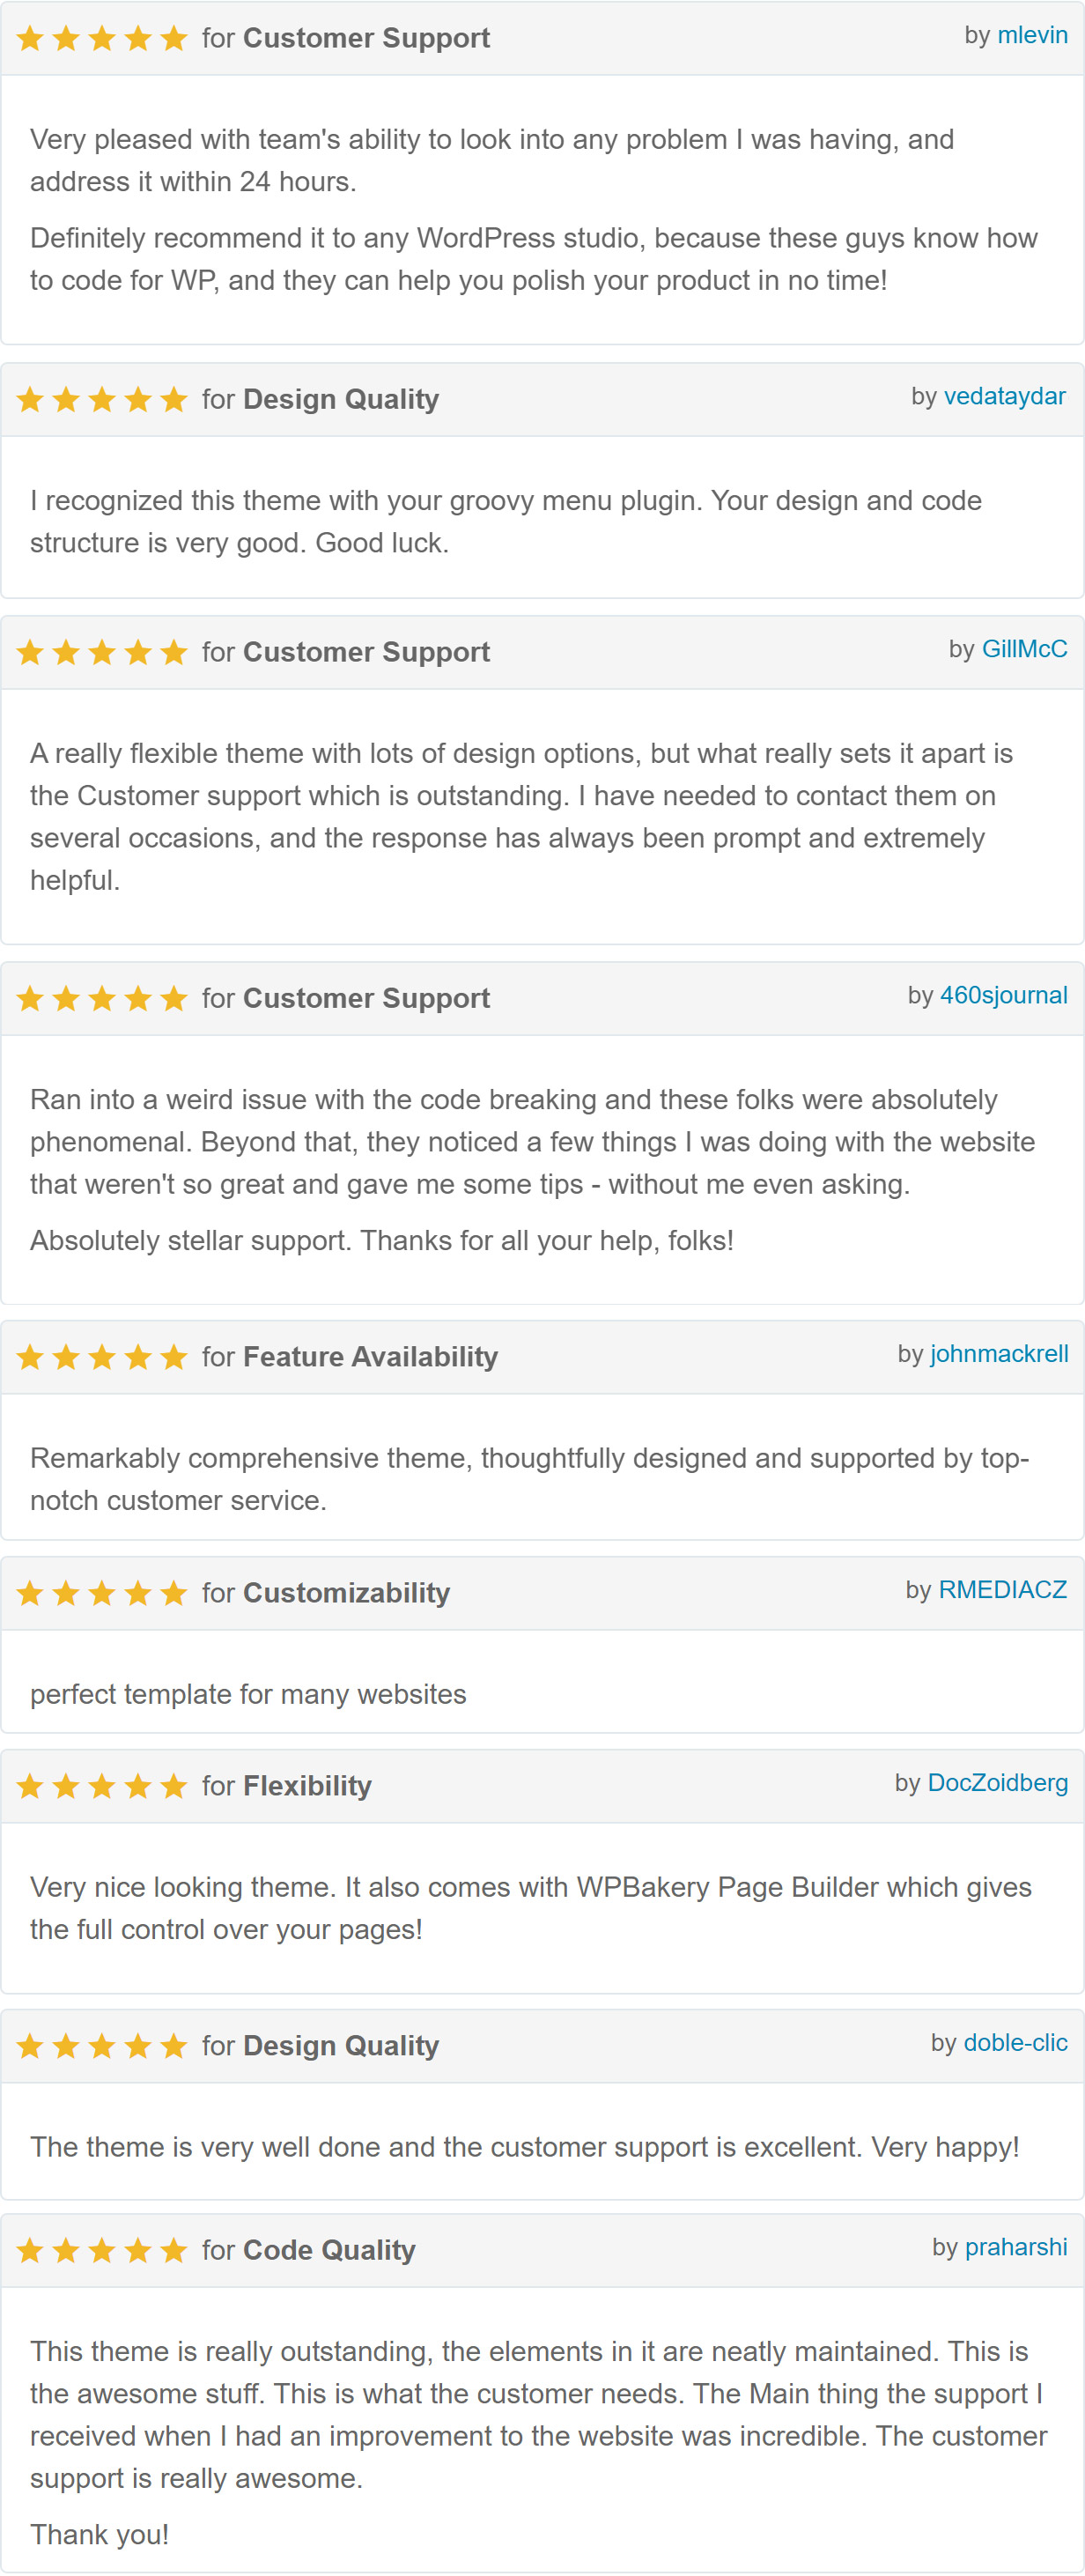 Customers Testimonials for our multipurpose wordpress theme